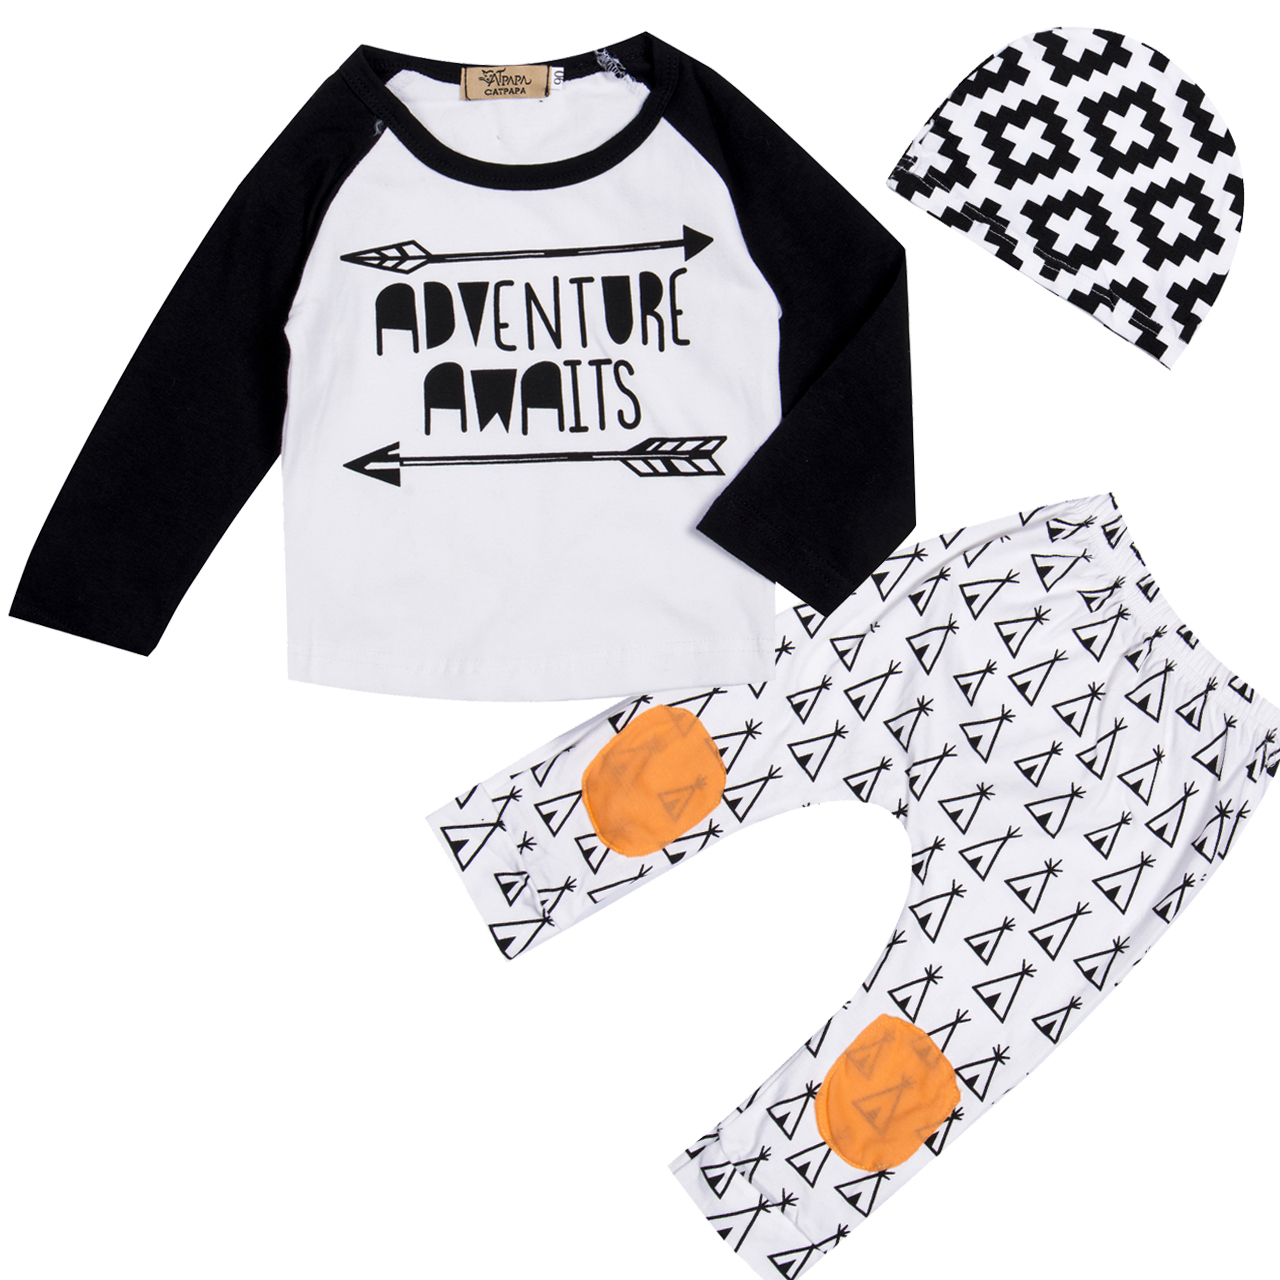 3 Pcs Newborn Kids Baby Girl Boy Letter Arrows Clothing Sets Infant Babies Long Sleeve Tops+Tents Pants+Hat Outfits Set Clothes baby fox print clothes set newborn baby boy girl long sleeve t shirt tops pants 2017 new hot fall bebes outfit kids clothing set